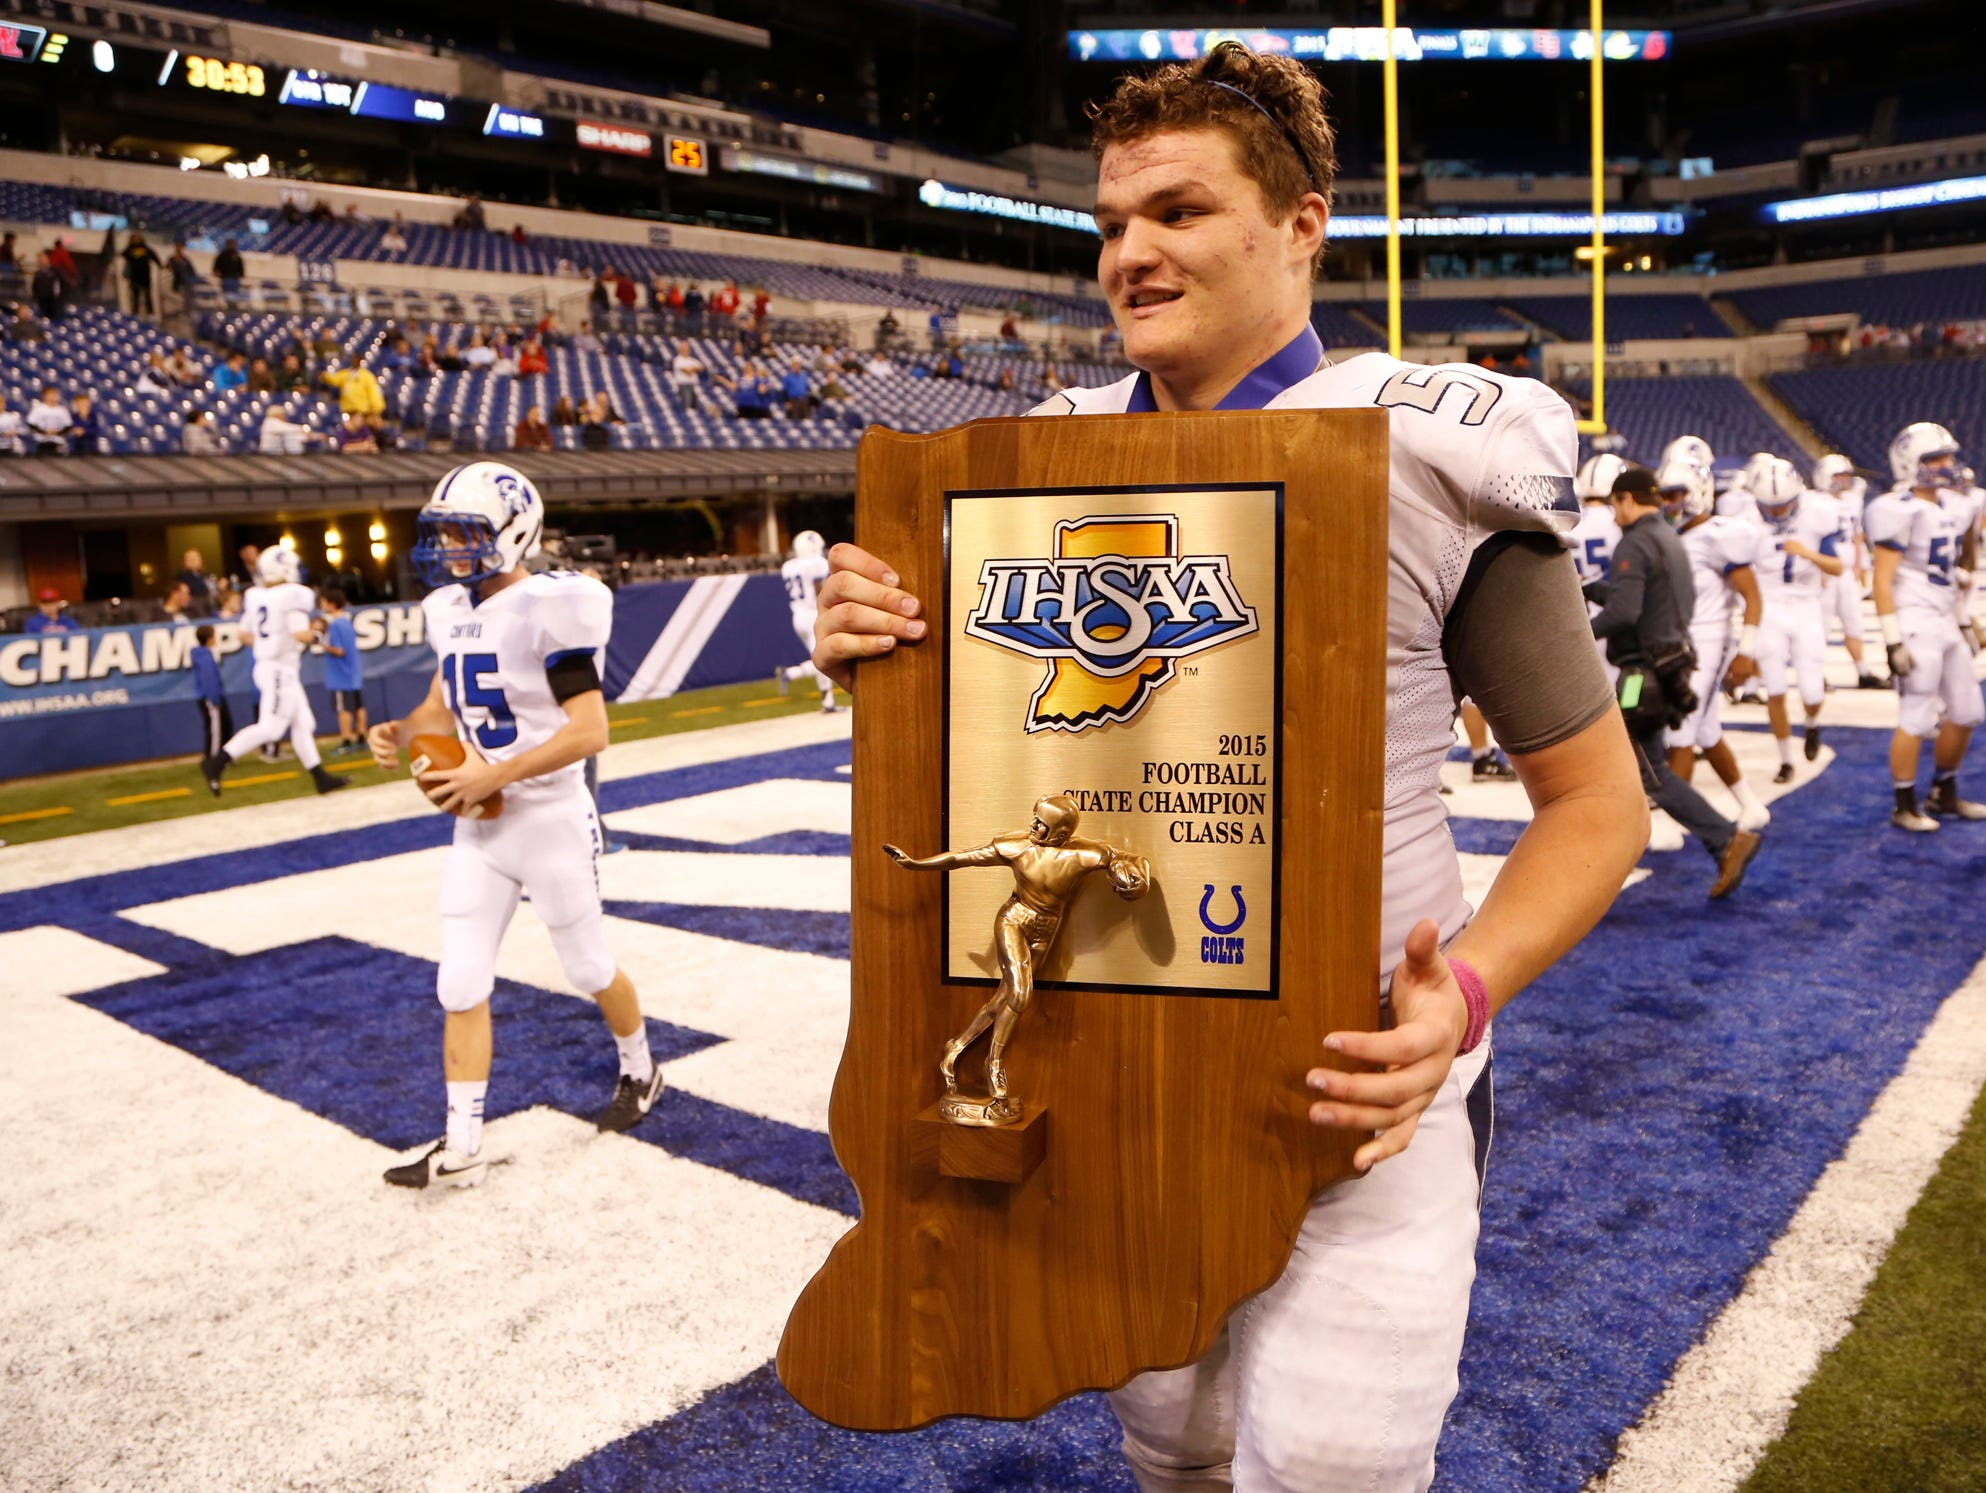 Coy Cronk carries the Class A state title trophy off the field after Central Catholic defeated Linton-Stockton 34-7 in the Class A state finals Friday, November 27, 2015, at Lucas Oil Stadium in Indianapolis.